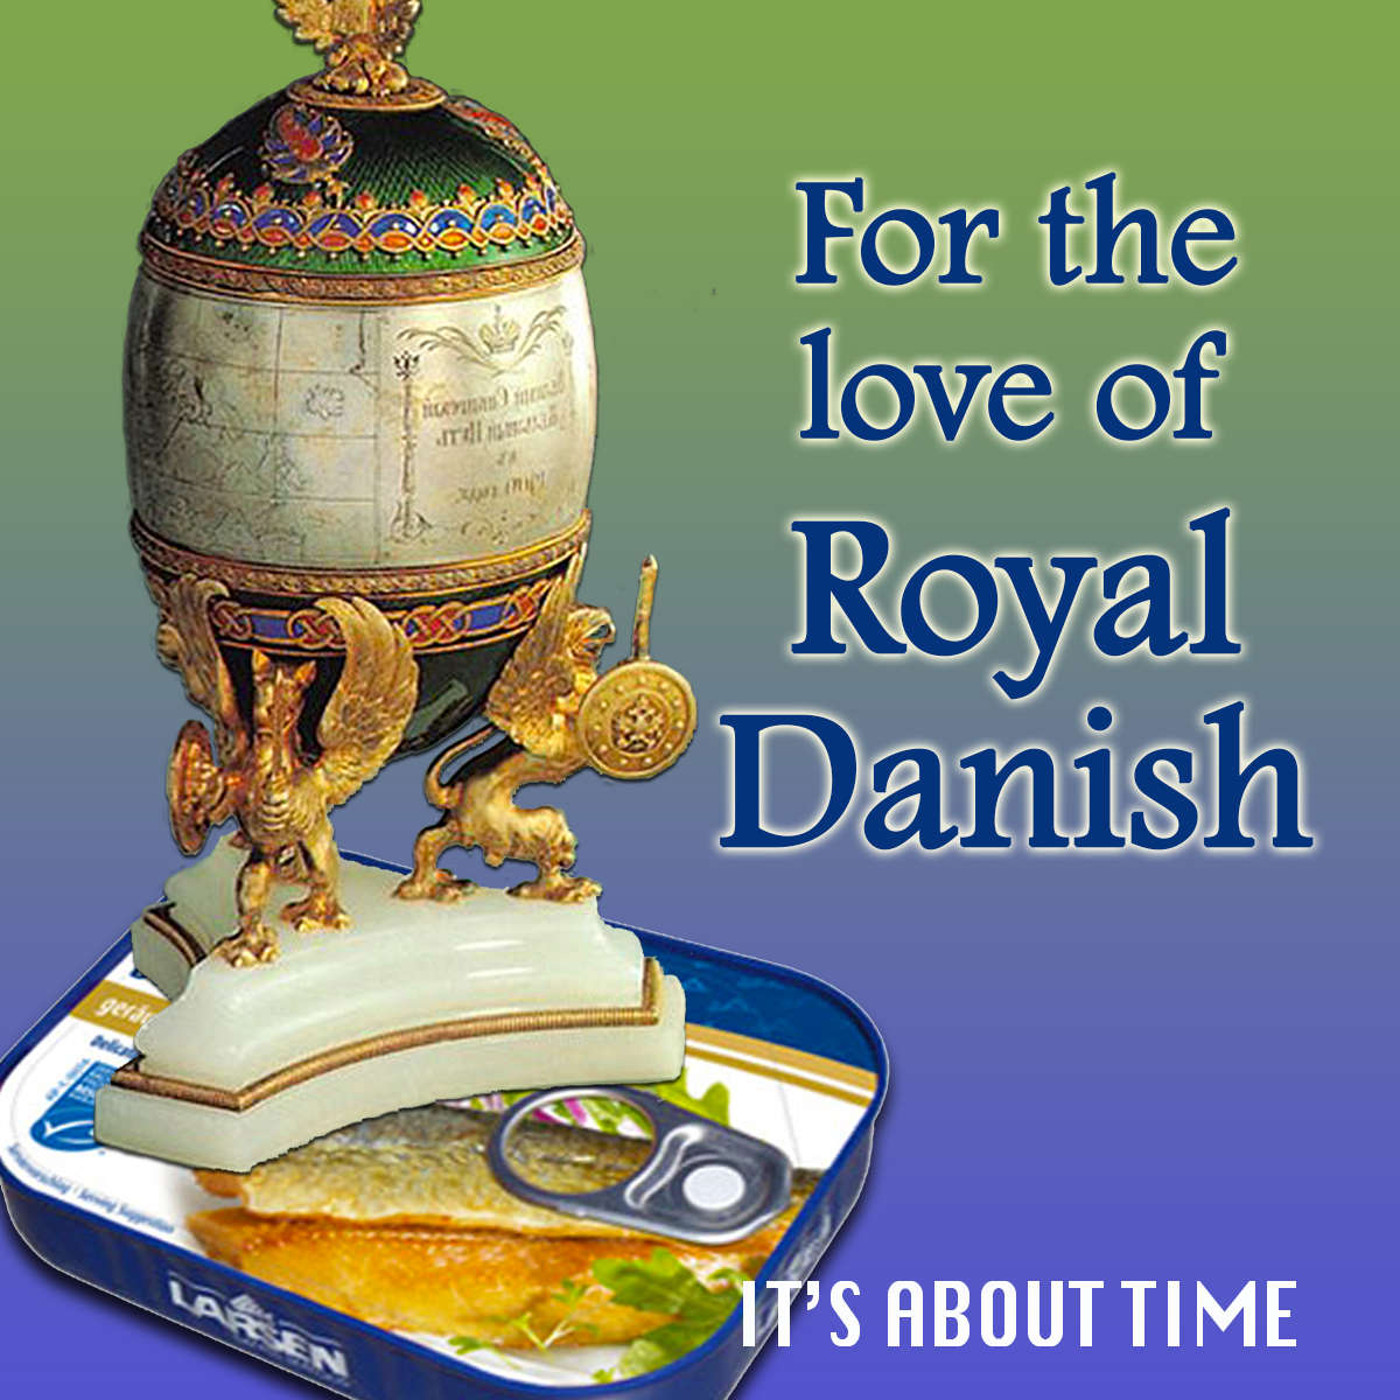 S01E05-For Love of Royal Danish - Time travel to Denmark to steal a Faberge Egg